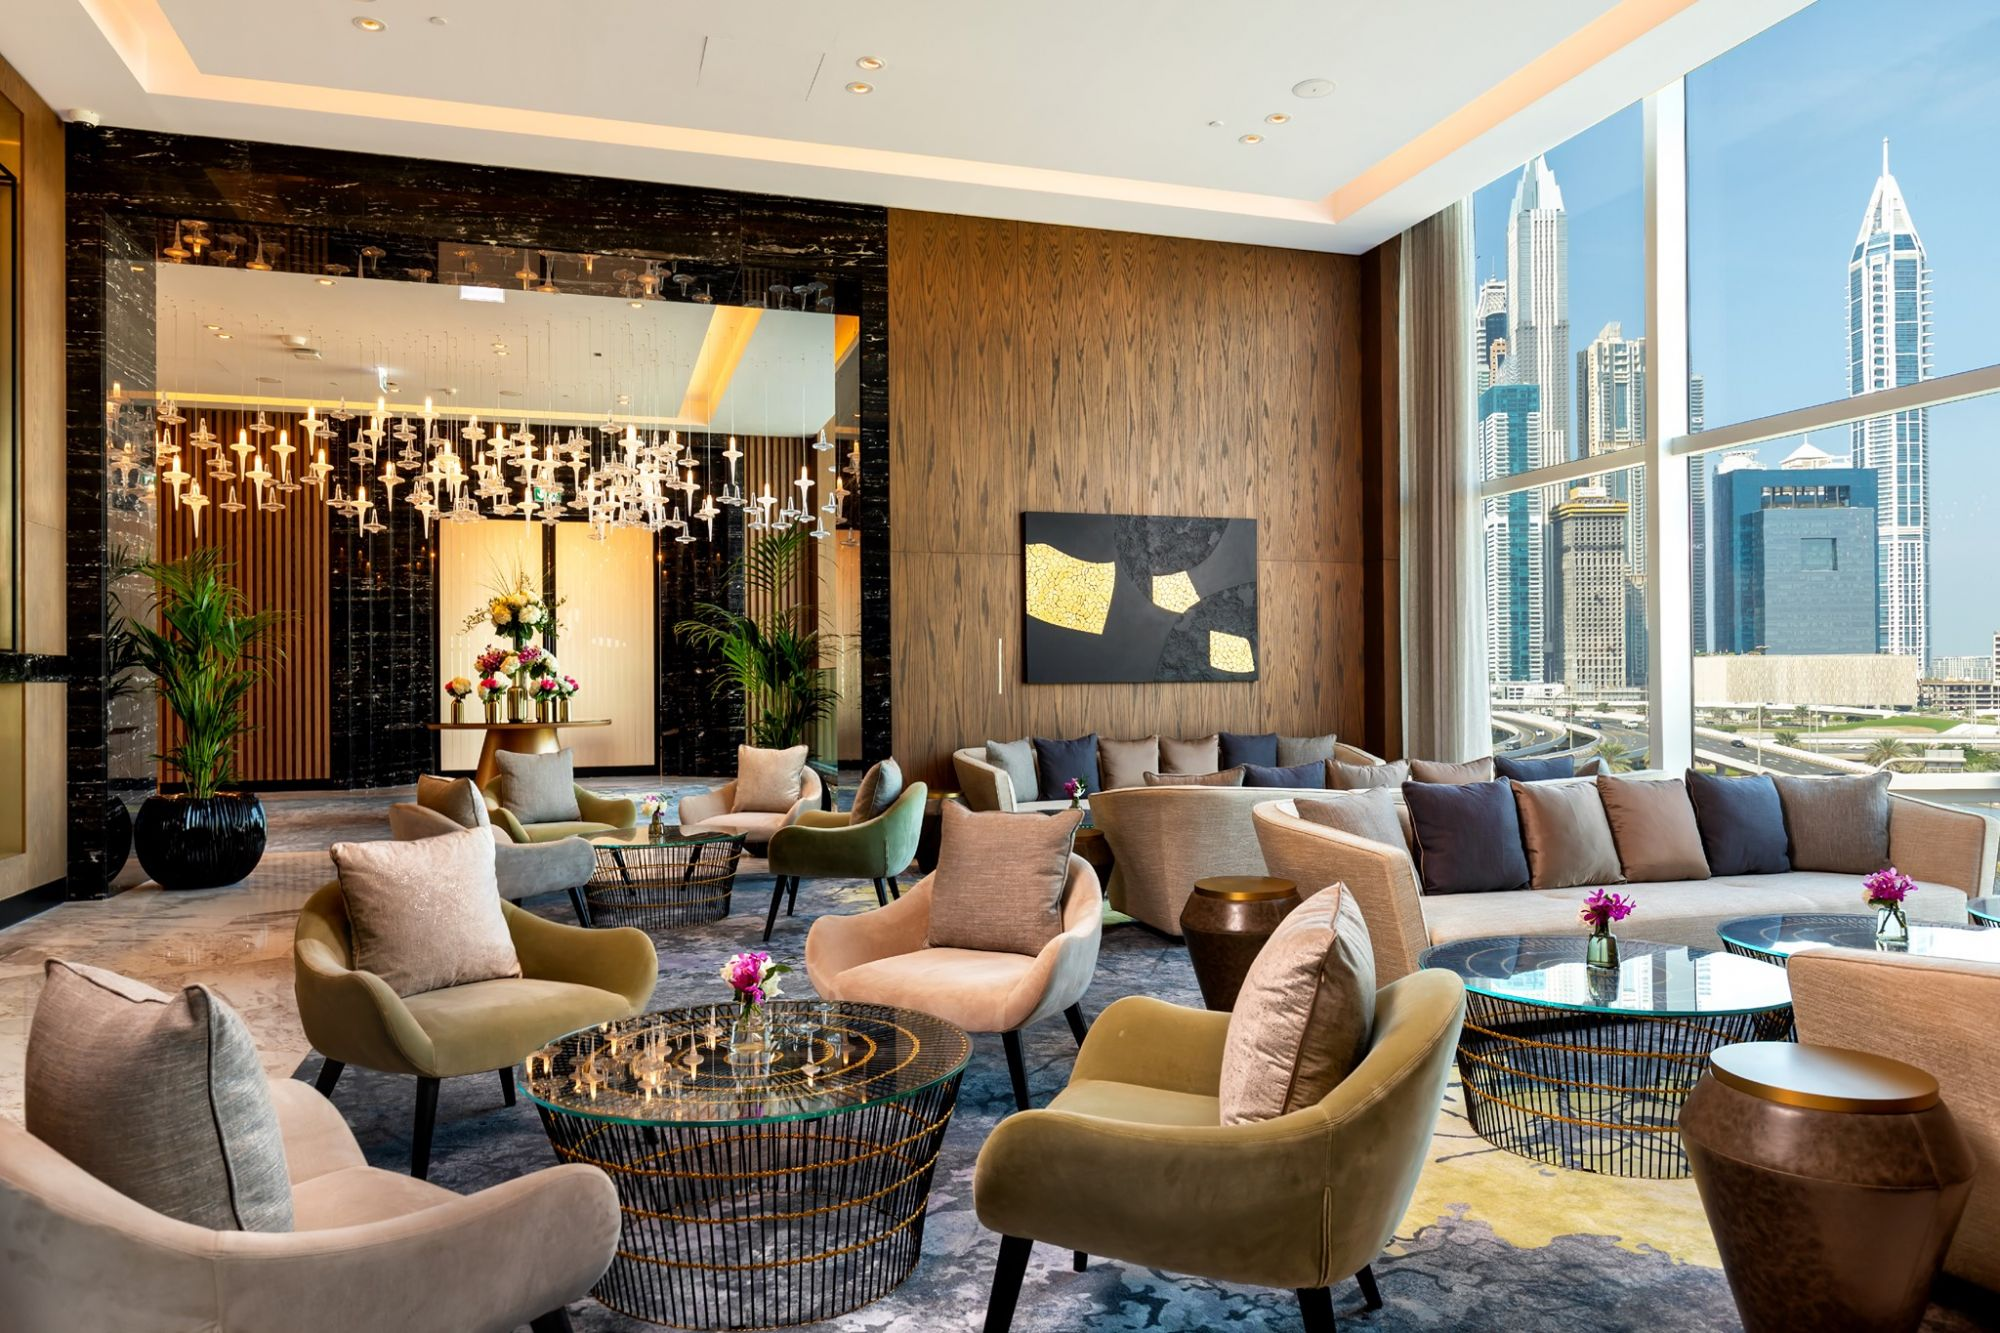 Nepal's Only Billionaire Binod Chaudhary Opens His First Luxury Hotel In Dubai